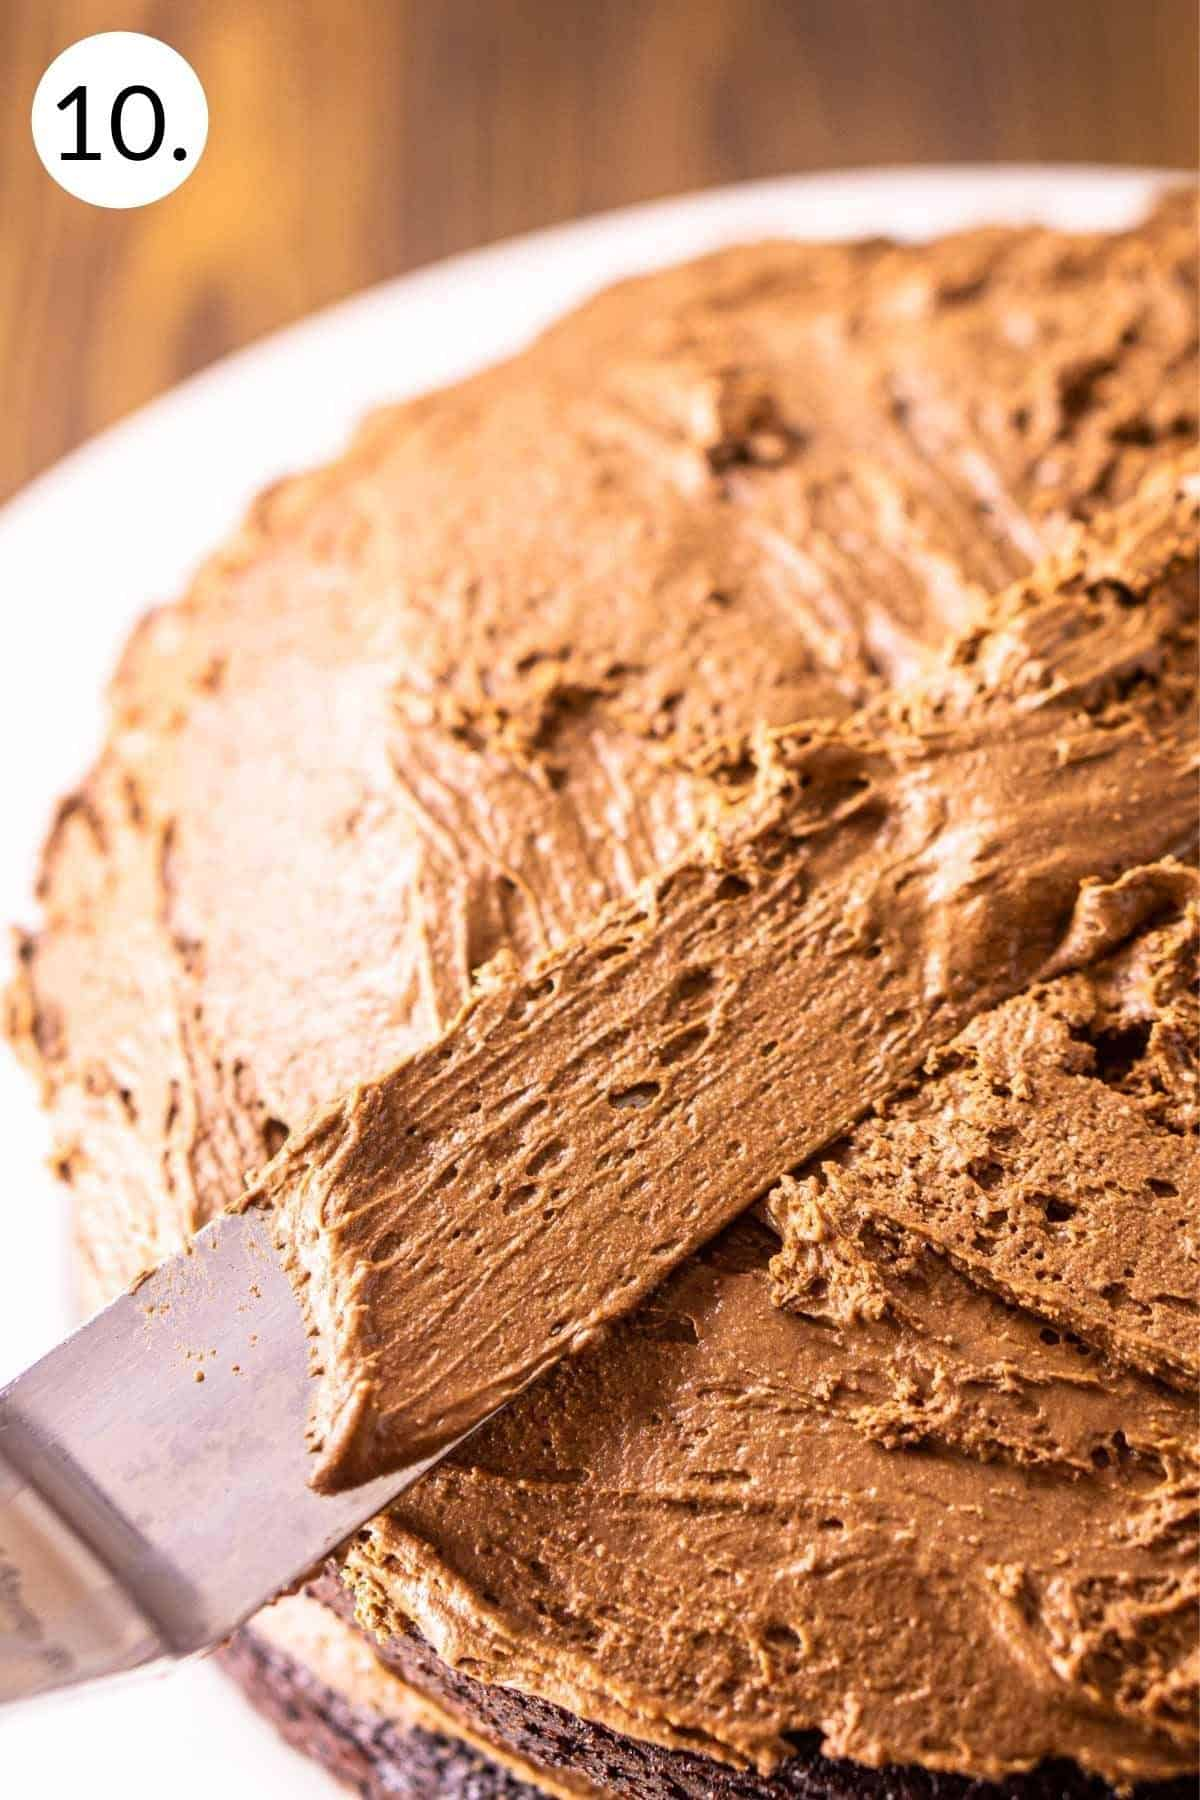 Spreading the Baileys mousse in between the layers of cake.